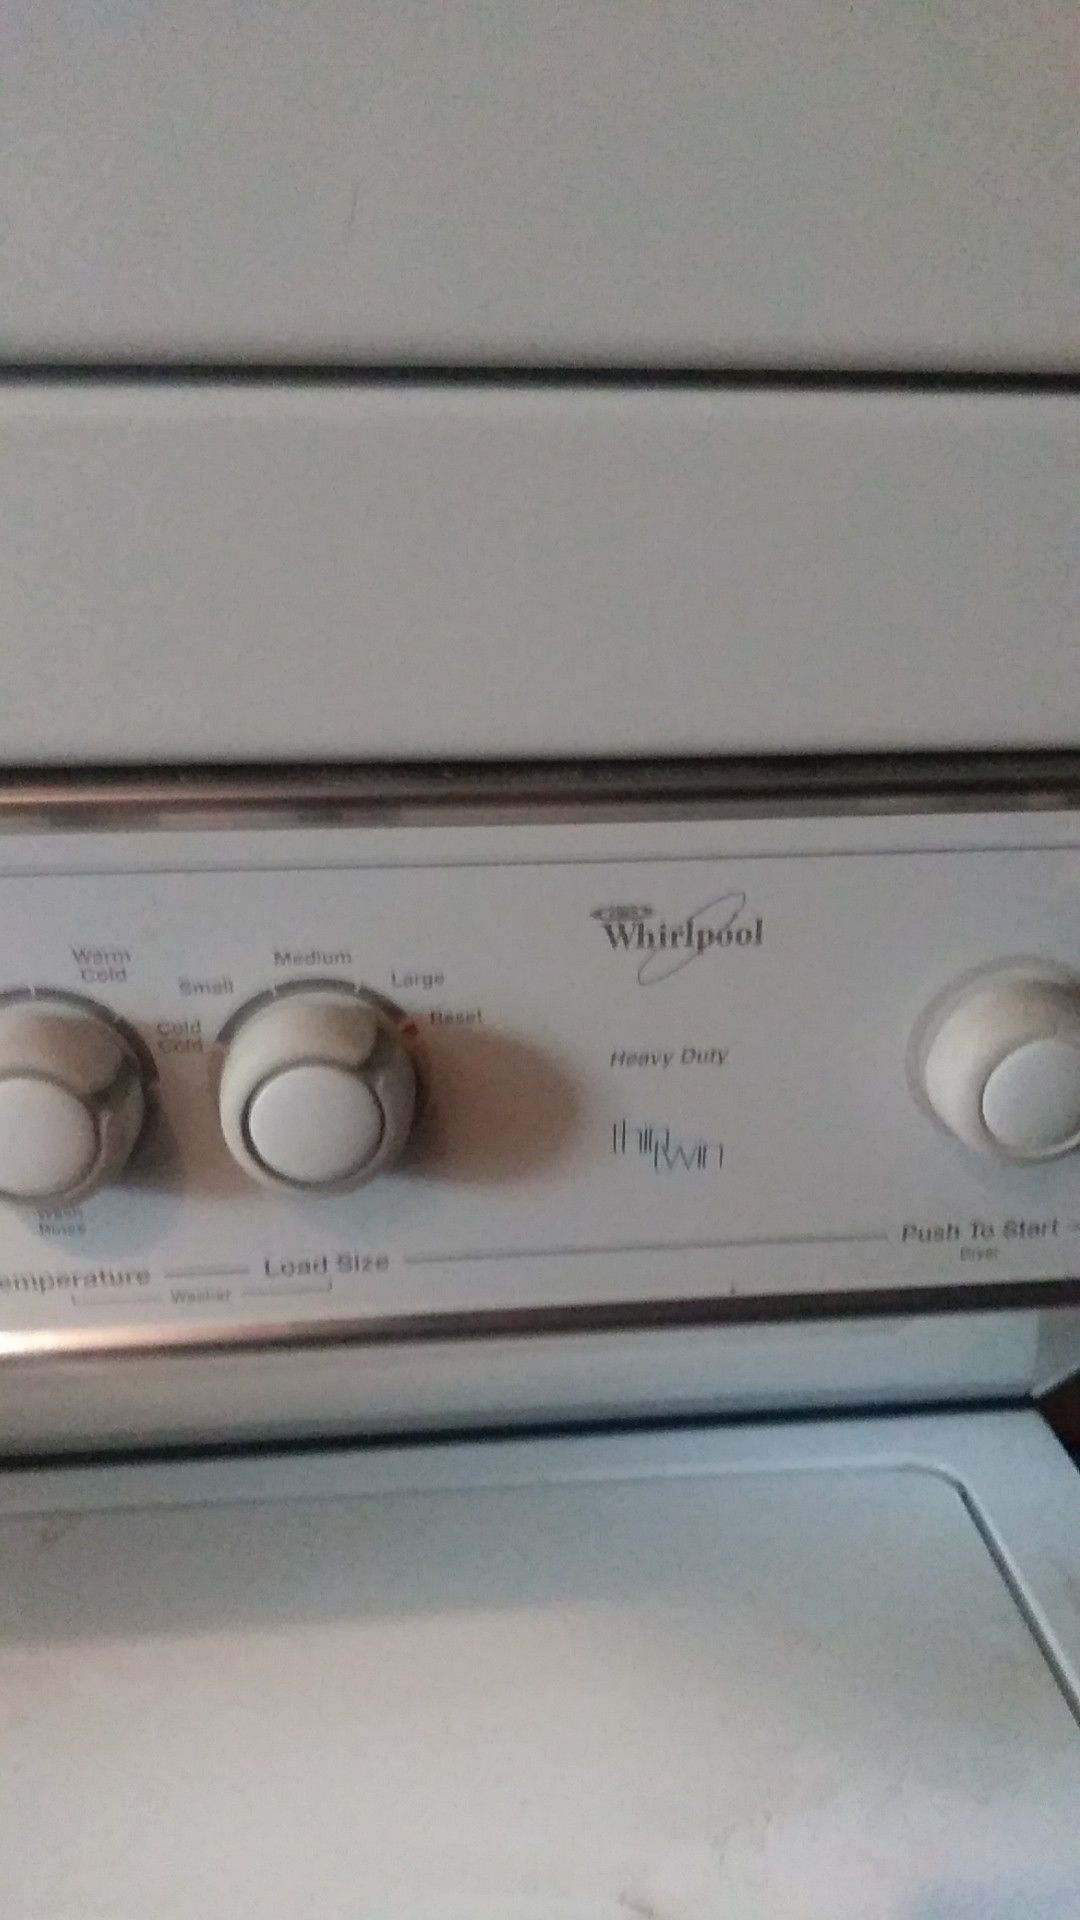 Stackable washer and dryer. Whirlpool